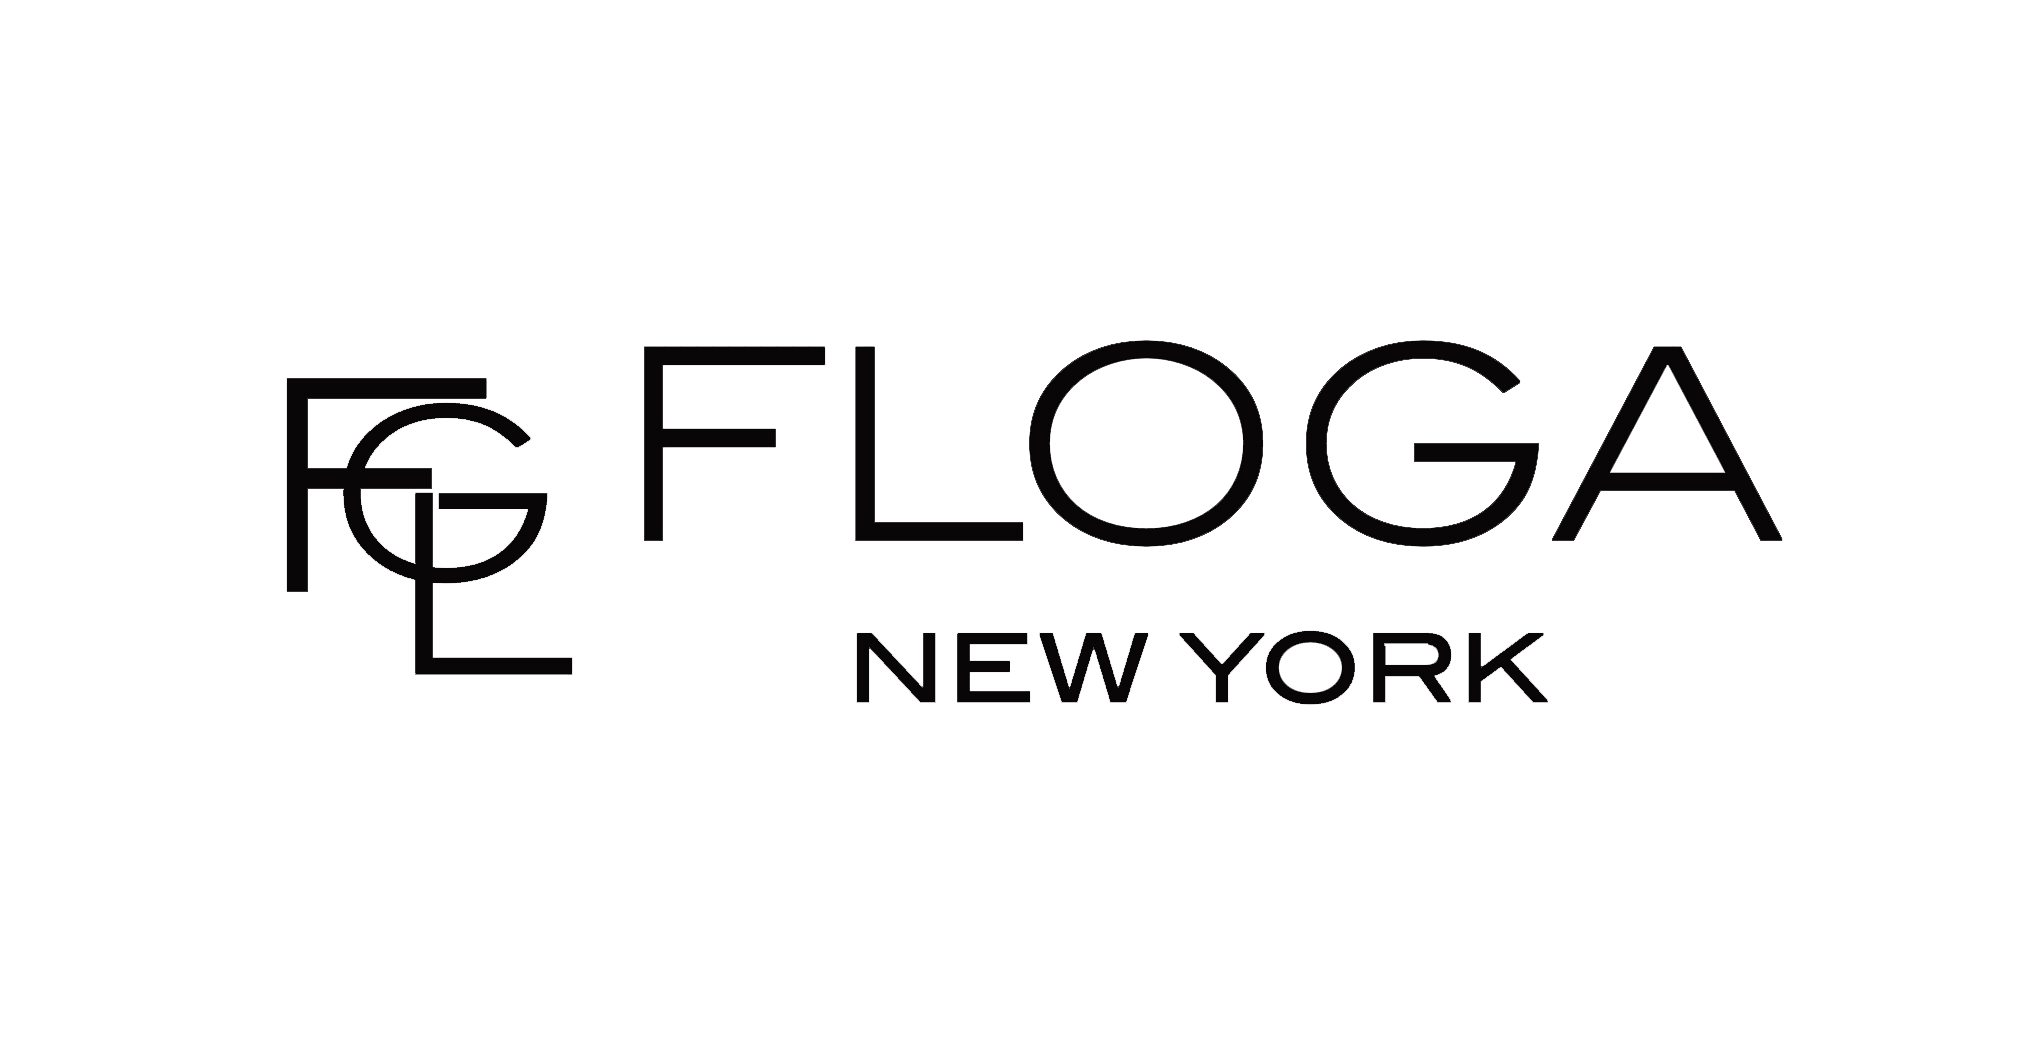 Floga New York